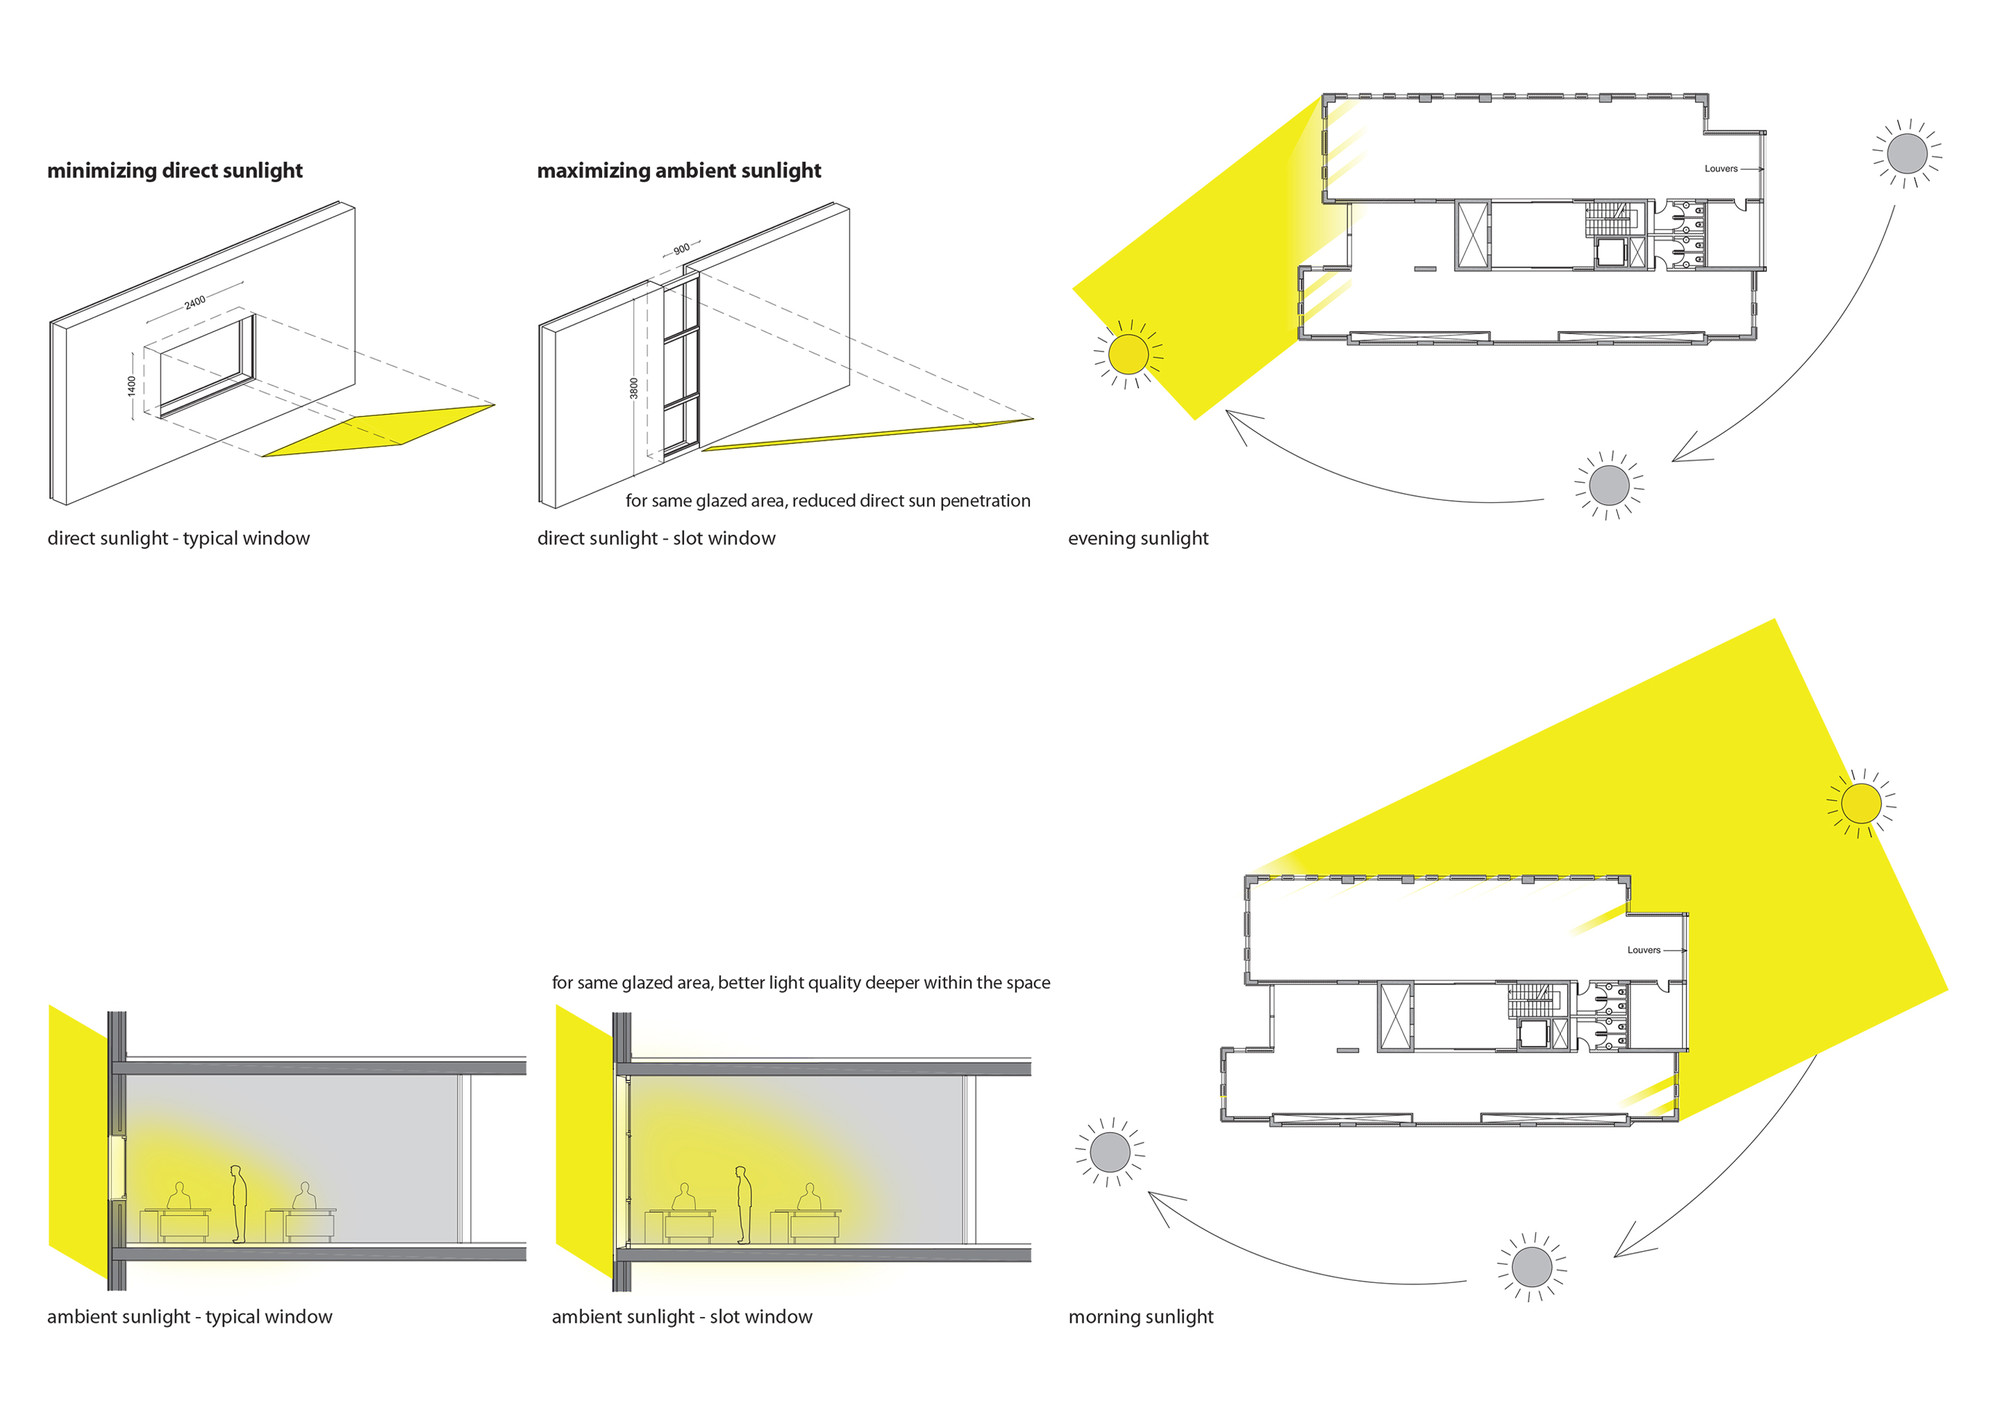 lighting architecture diagram twisted pair wiring gallery of mitsulift hq raed abillama architects 22